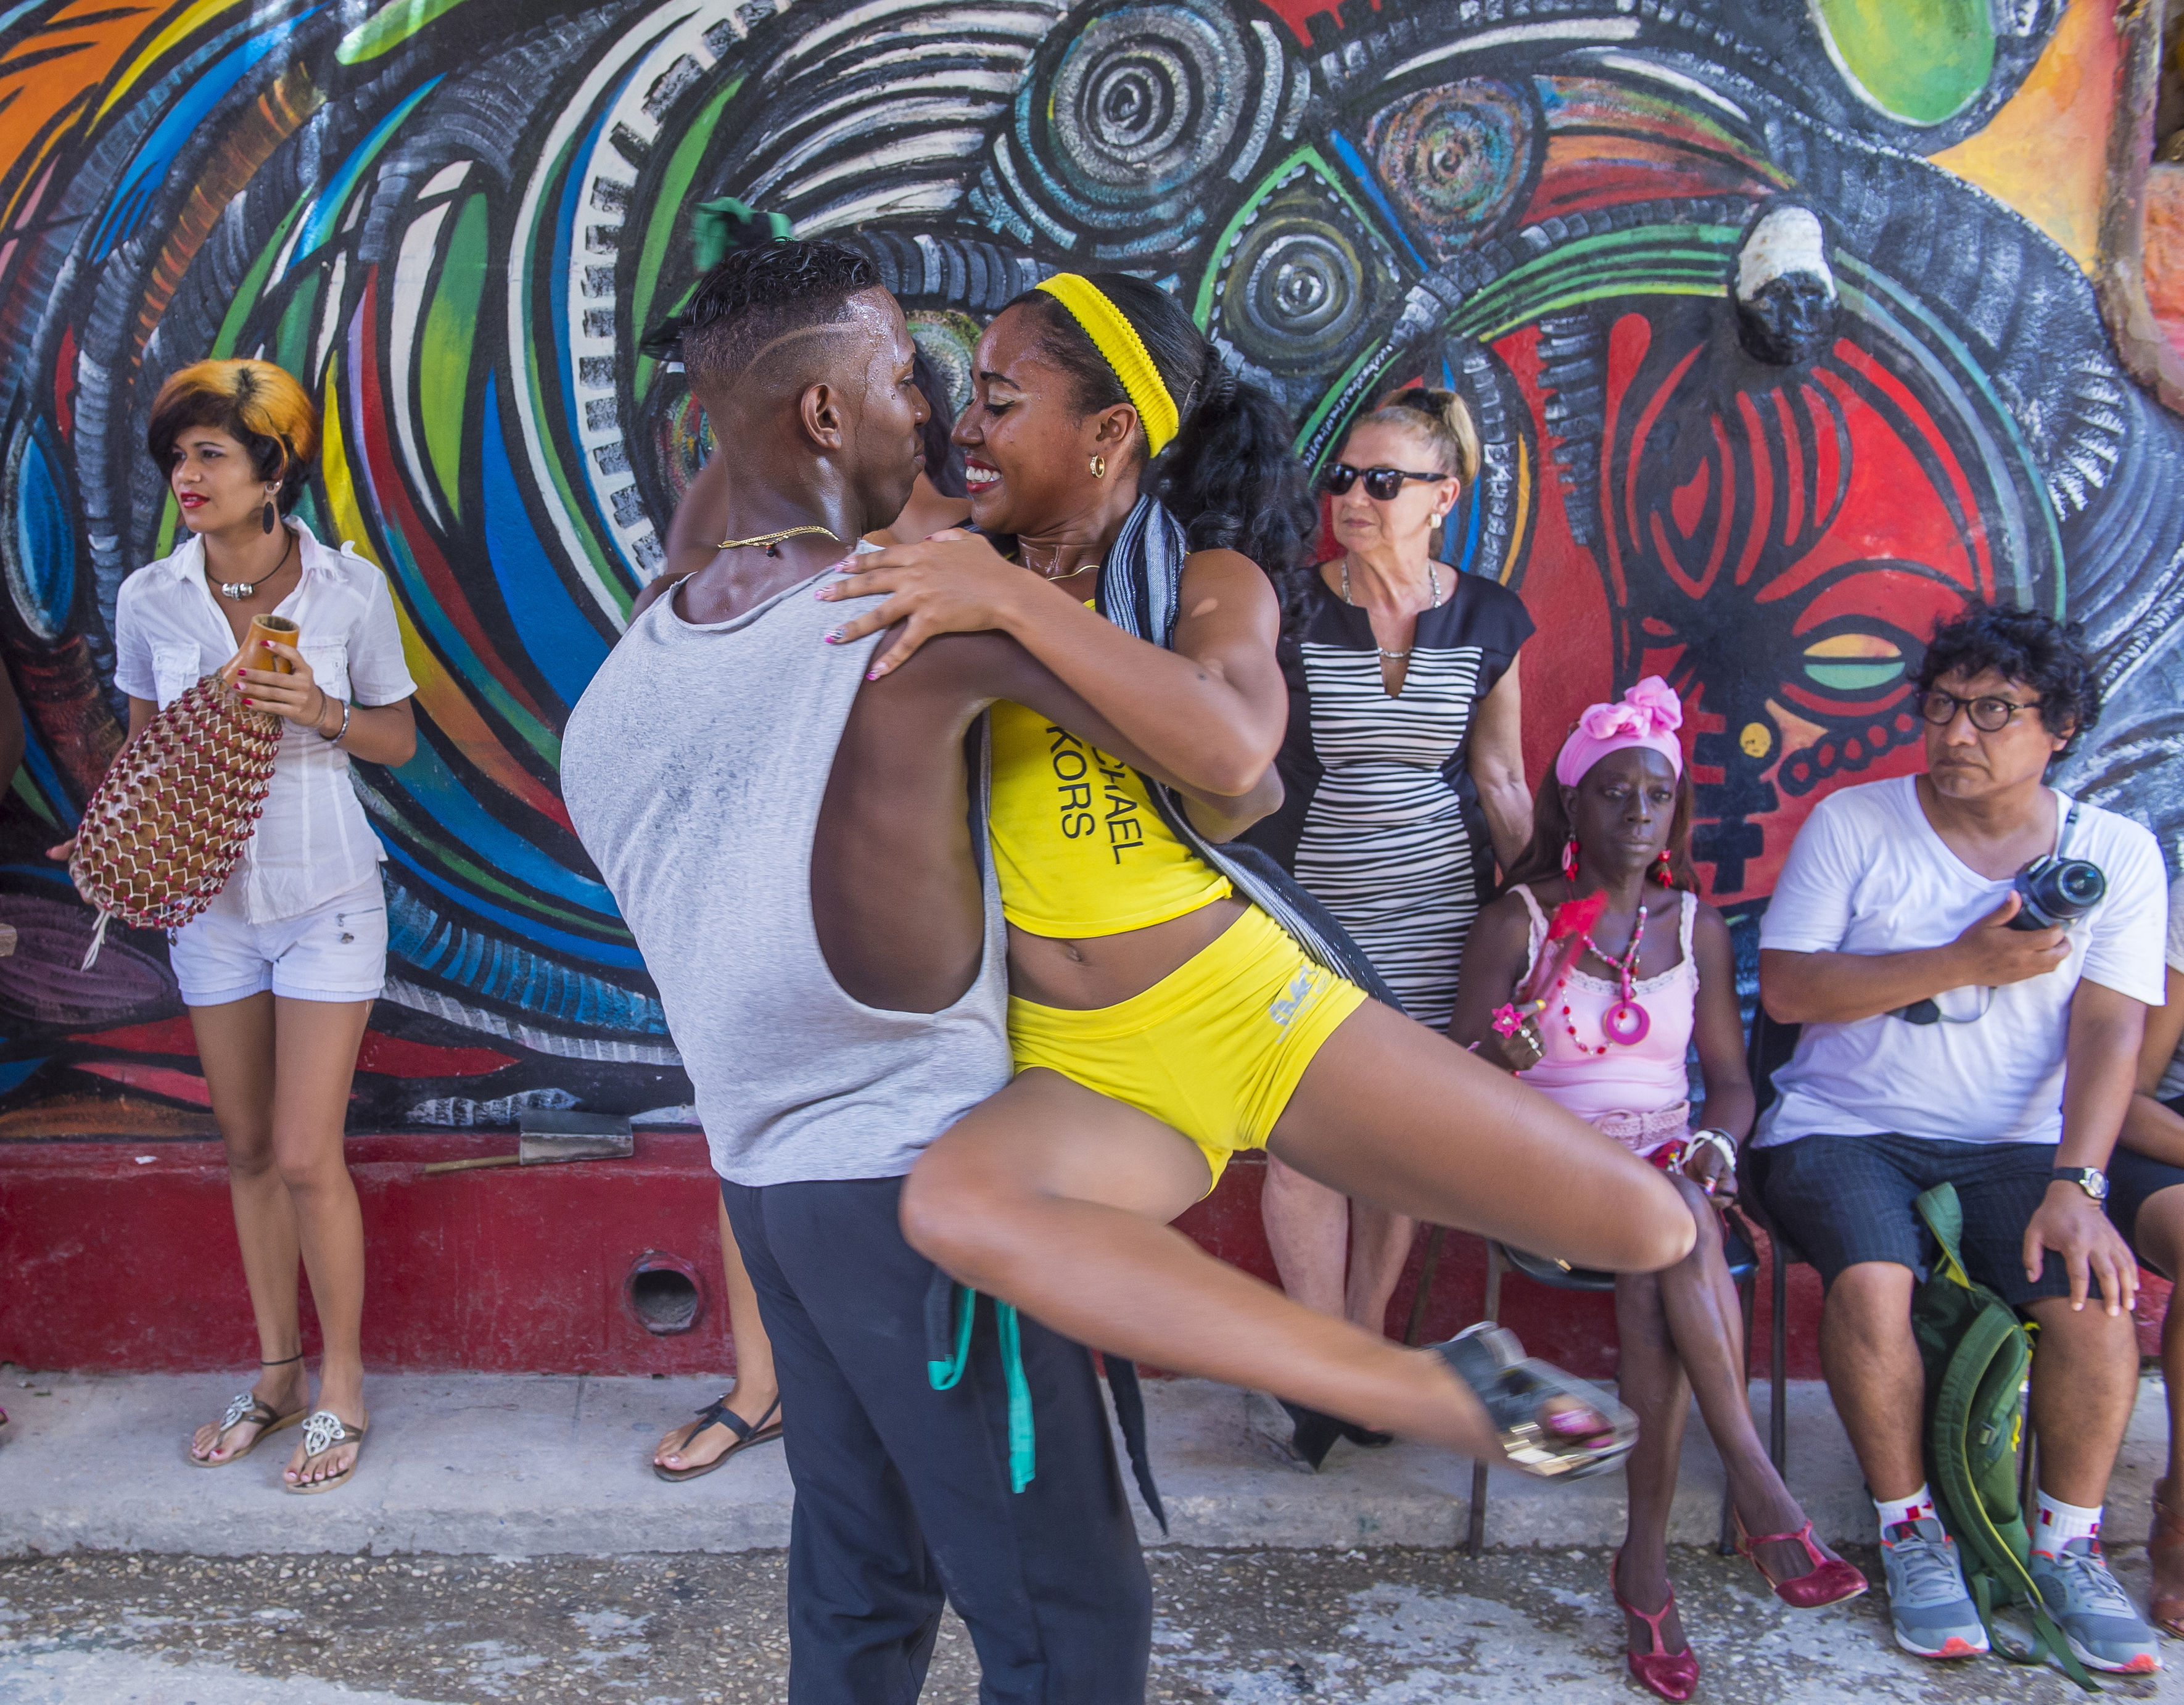 61025886 - havana, cuba - july 18 : rumba dancers in havana cuba on july 18 2016. rumba is a secular genre of cuban music involving dance, percussion, and song. it originated in the northern regions of cuba